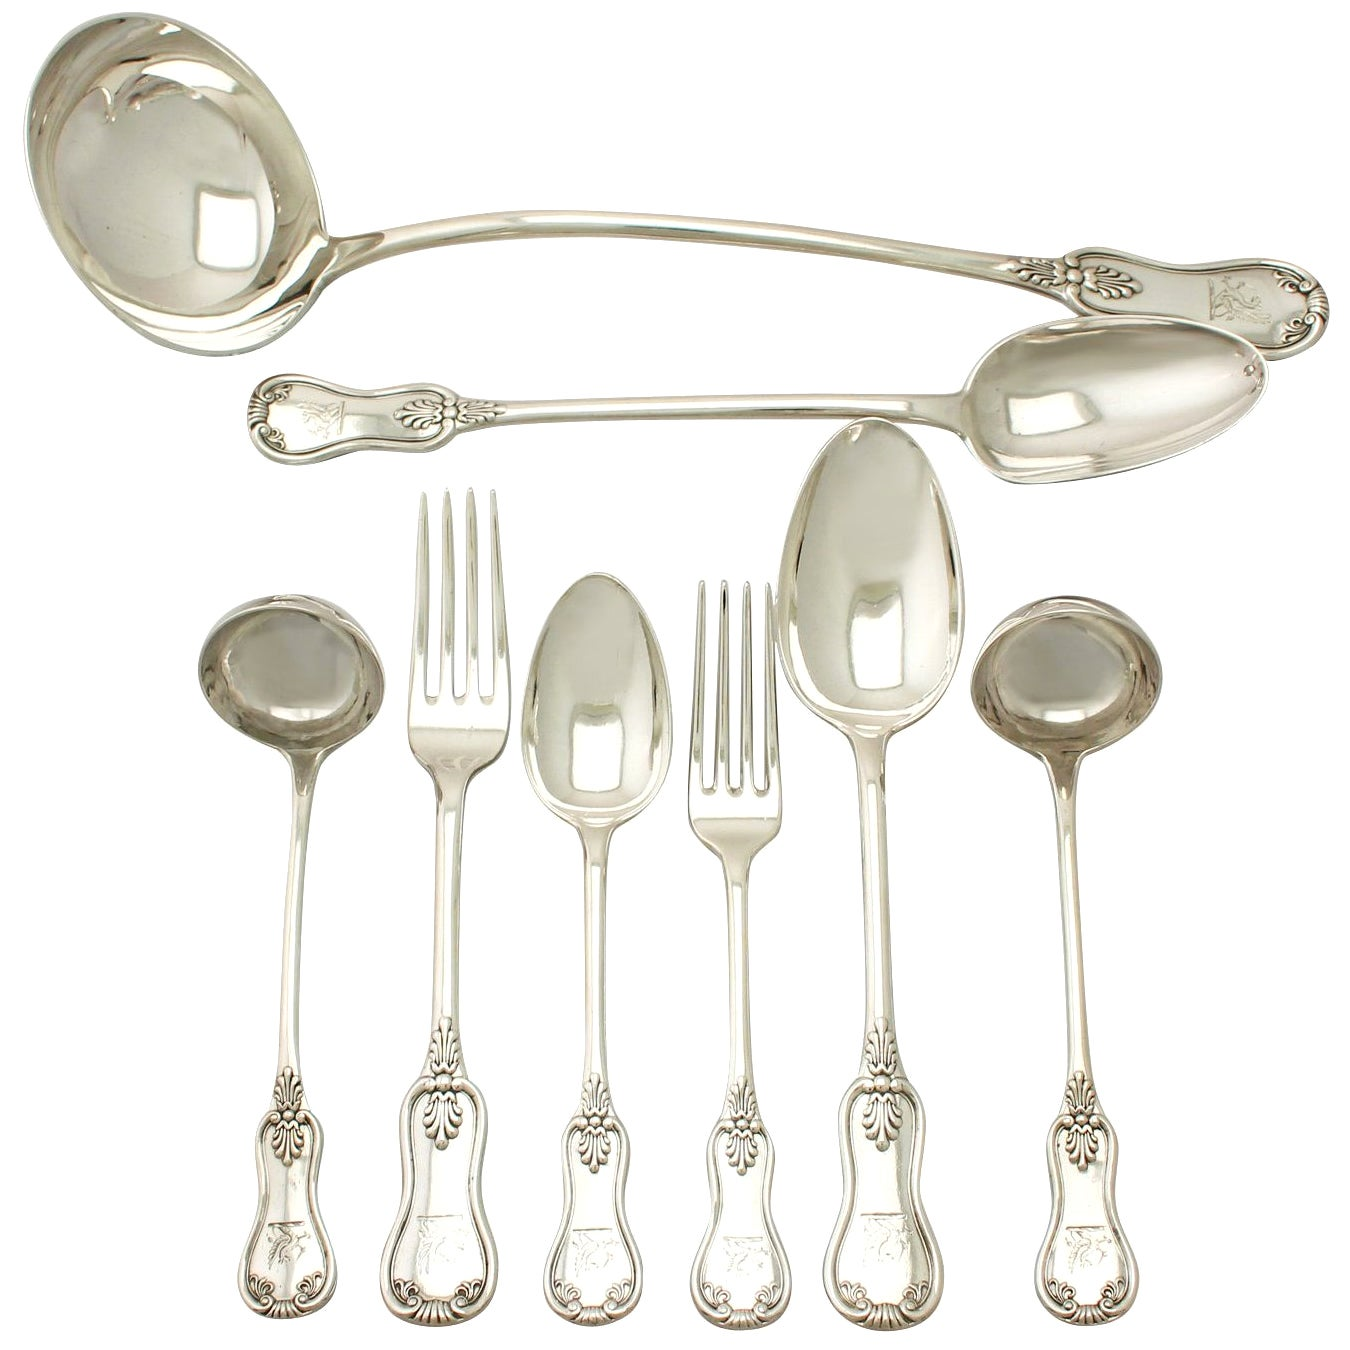 Antique Victorian Scottish Sterling Silver Canteen of Cutlery for 12 Persons